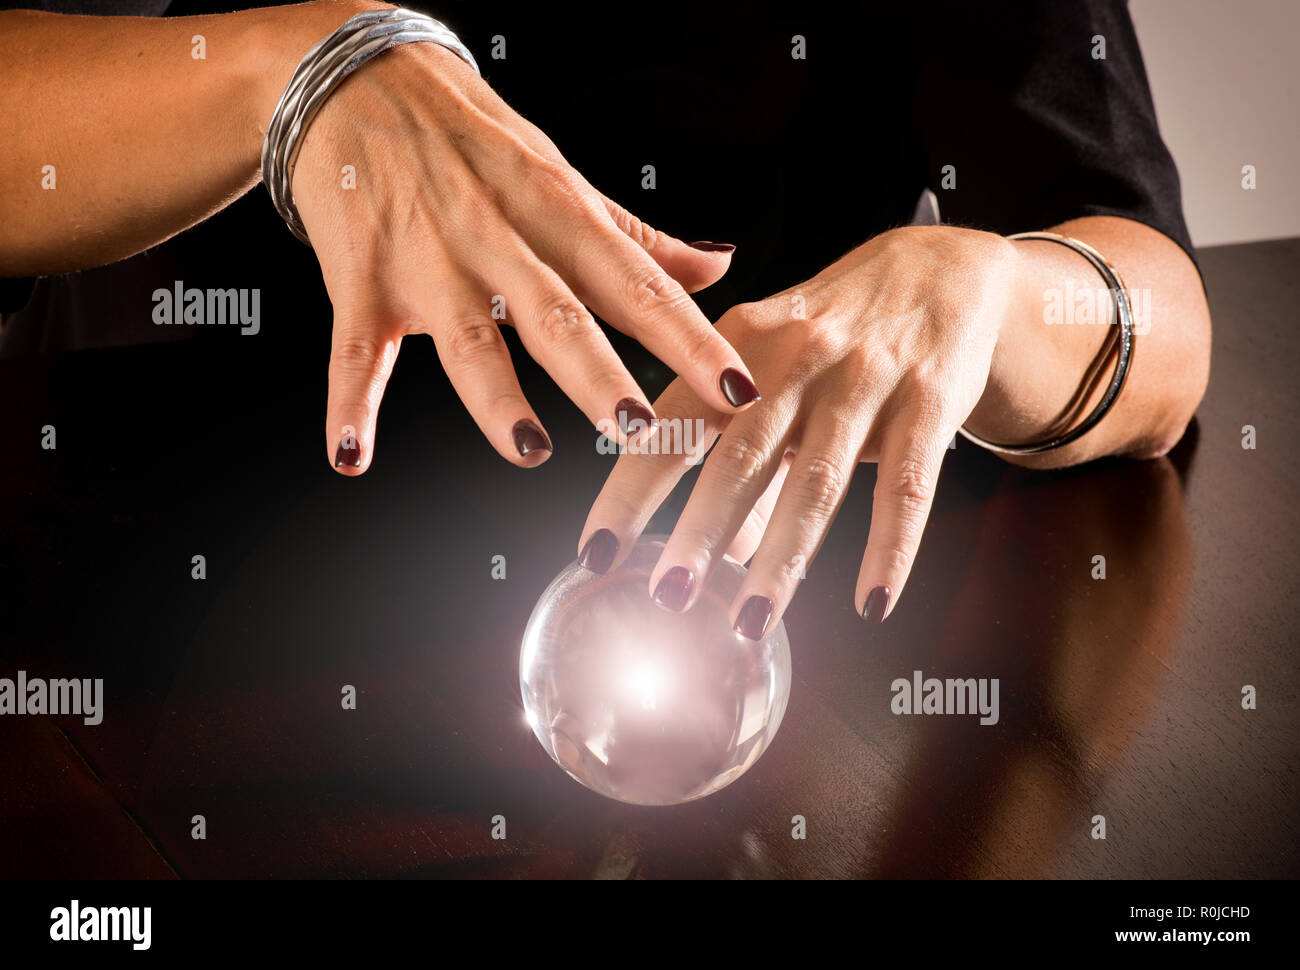 Fortune teller predicting the future on a magical glowing glass or crystal sphere in a close up view of her hands hovering over the orb - Stock Image